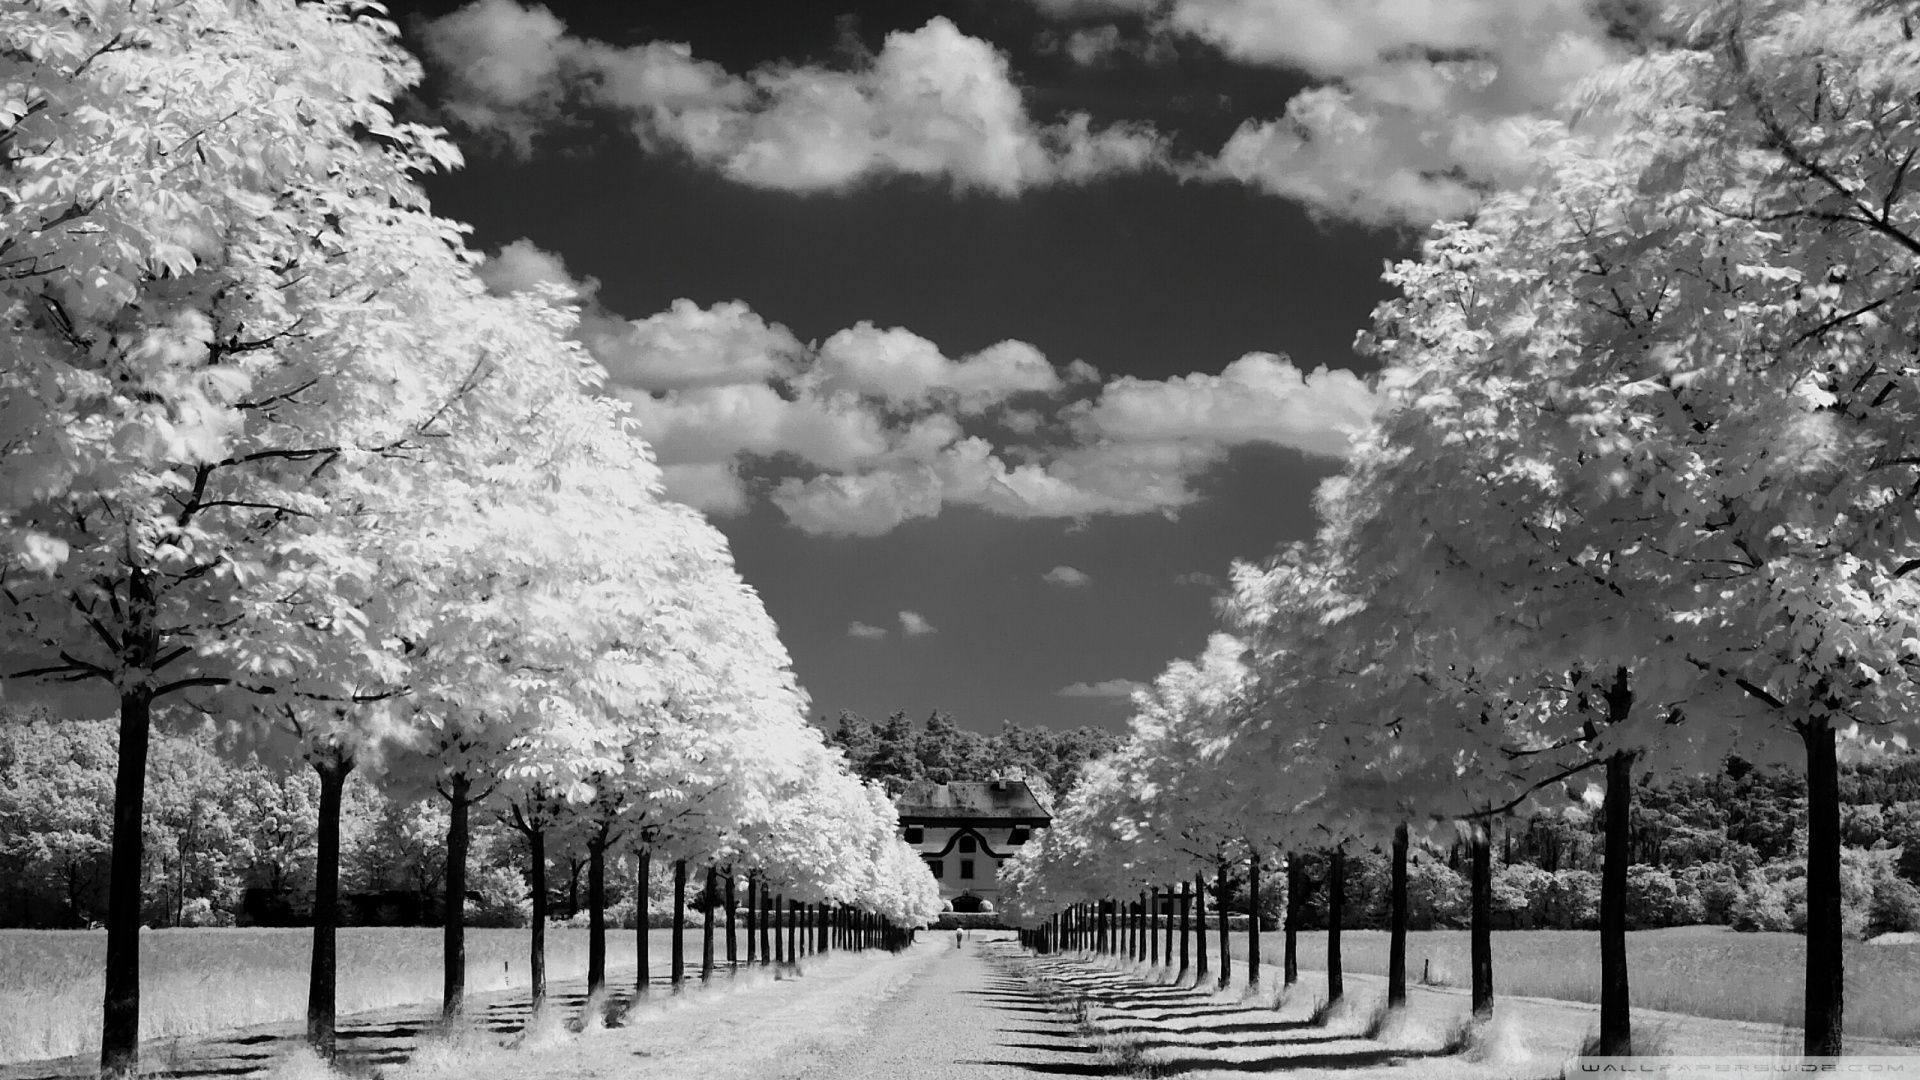 Ginkgo trees wallpaper high definition high quality widescreen - Trees Along The Road Black And White Hd Wide Wallpaper For Widescreen